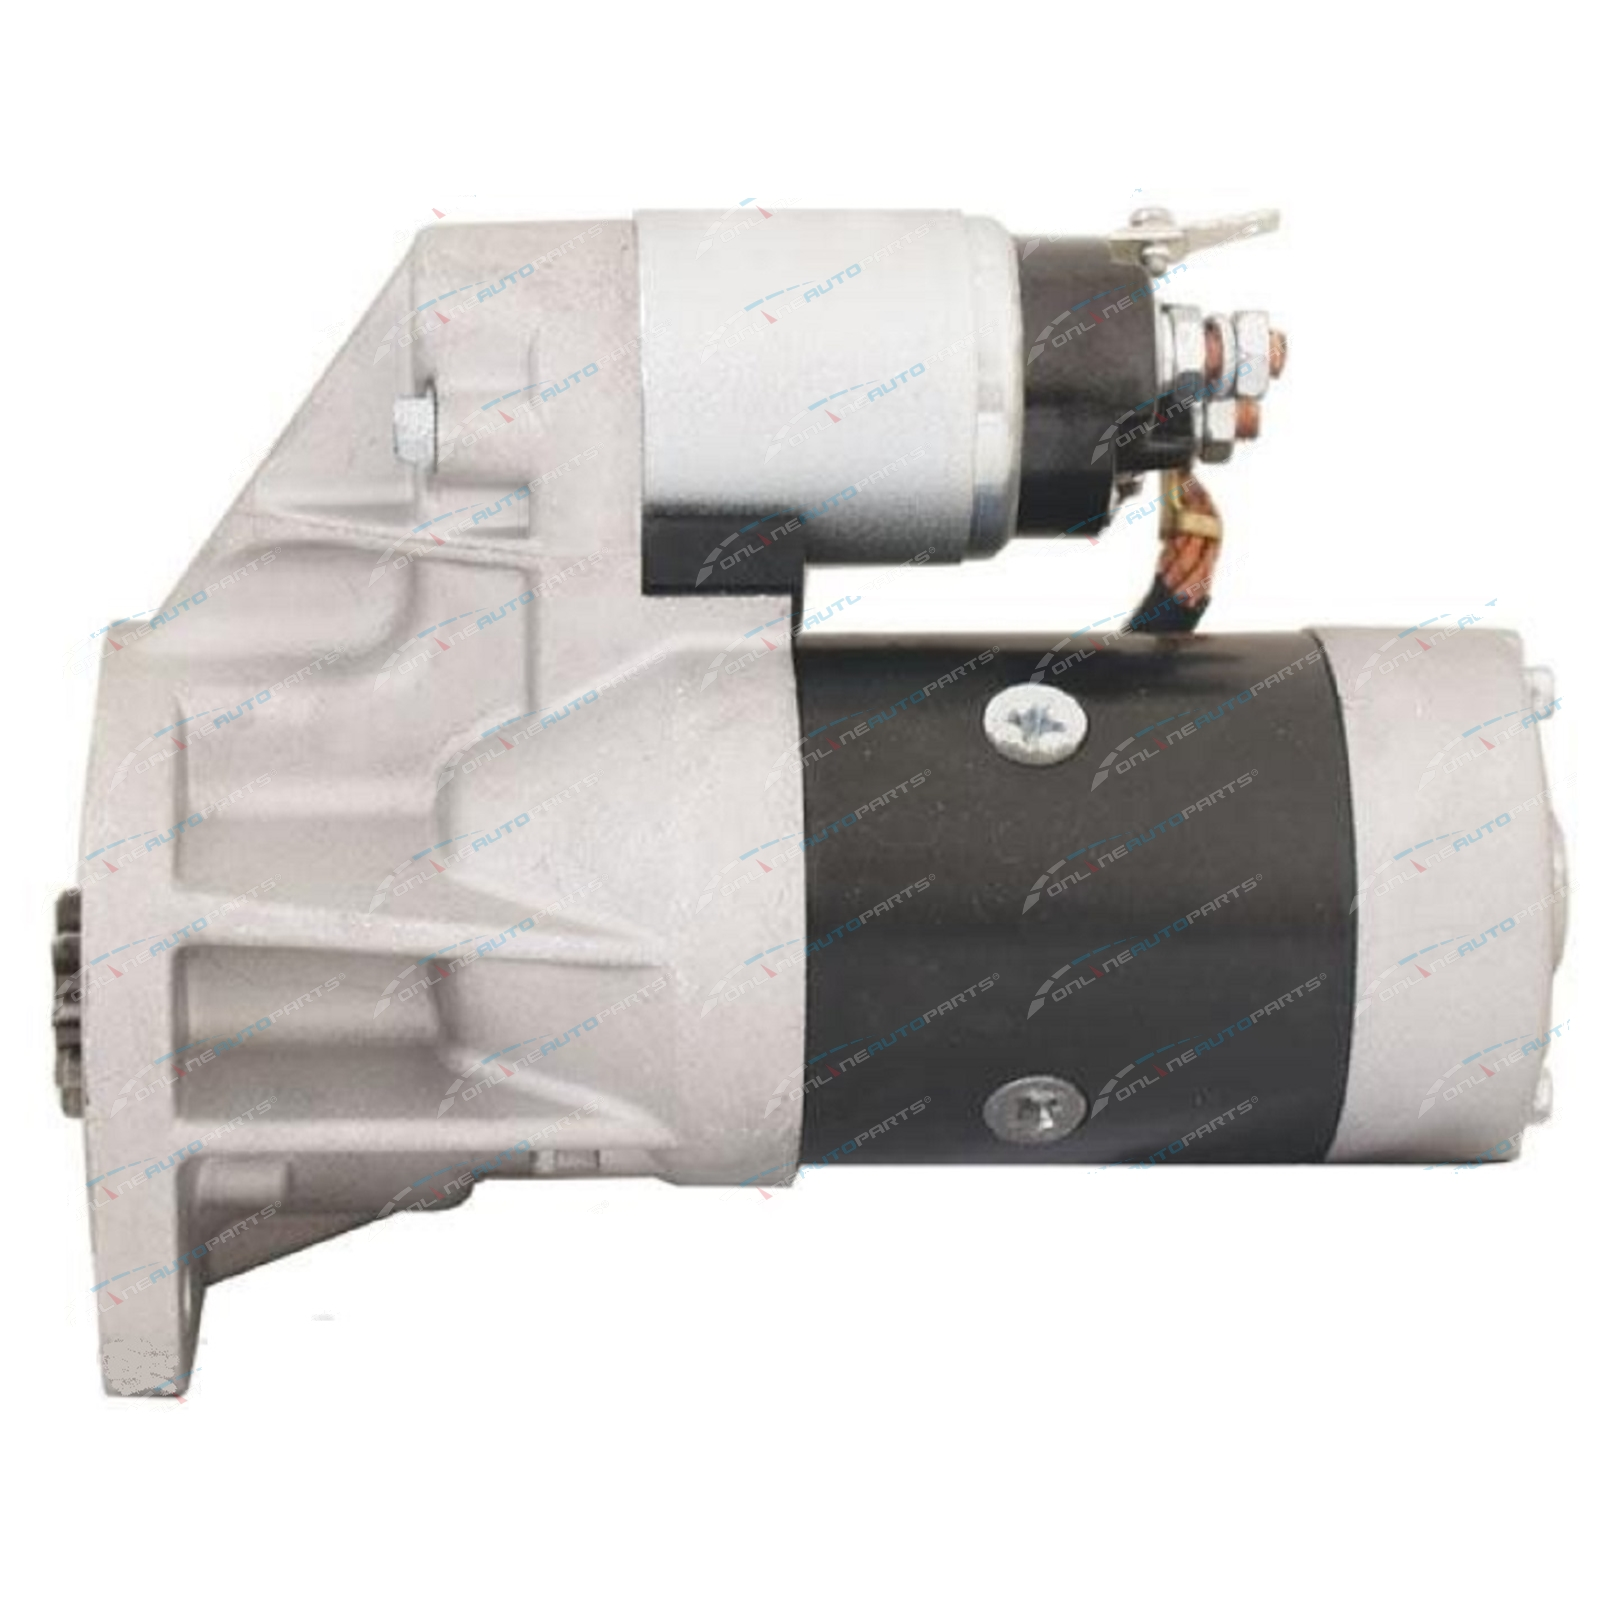 Starter motor oem replacement oem replacement for Match motors inc whitefield me